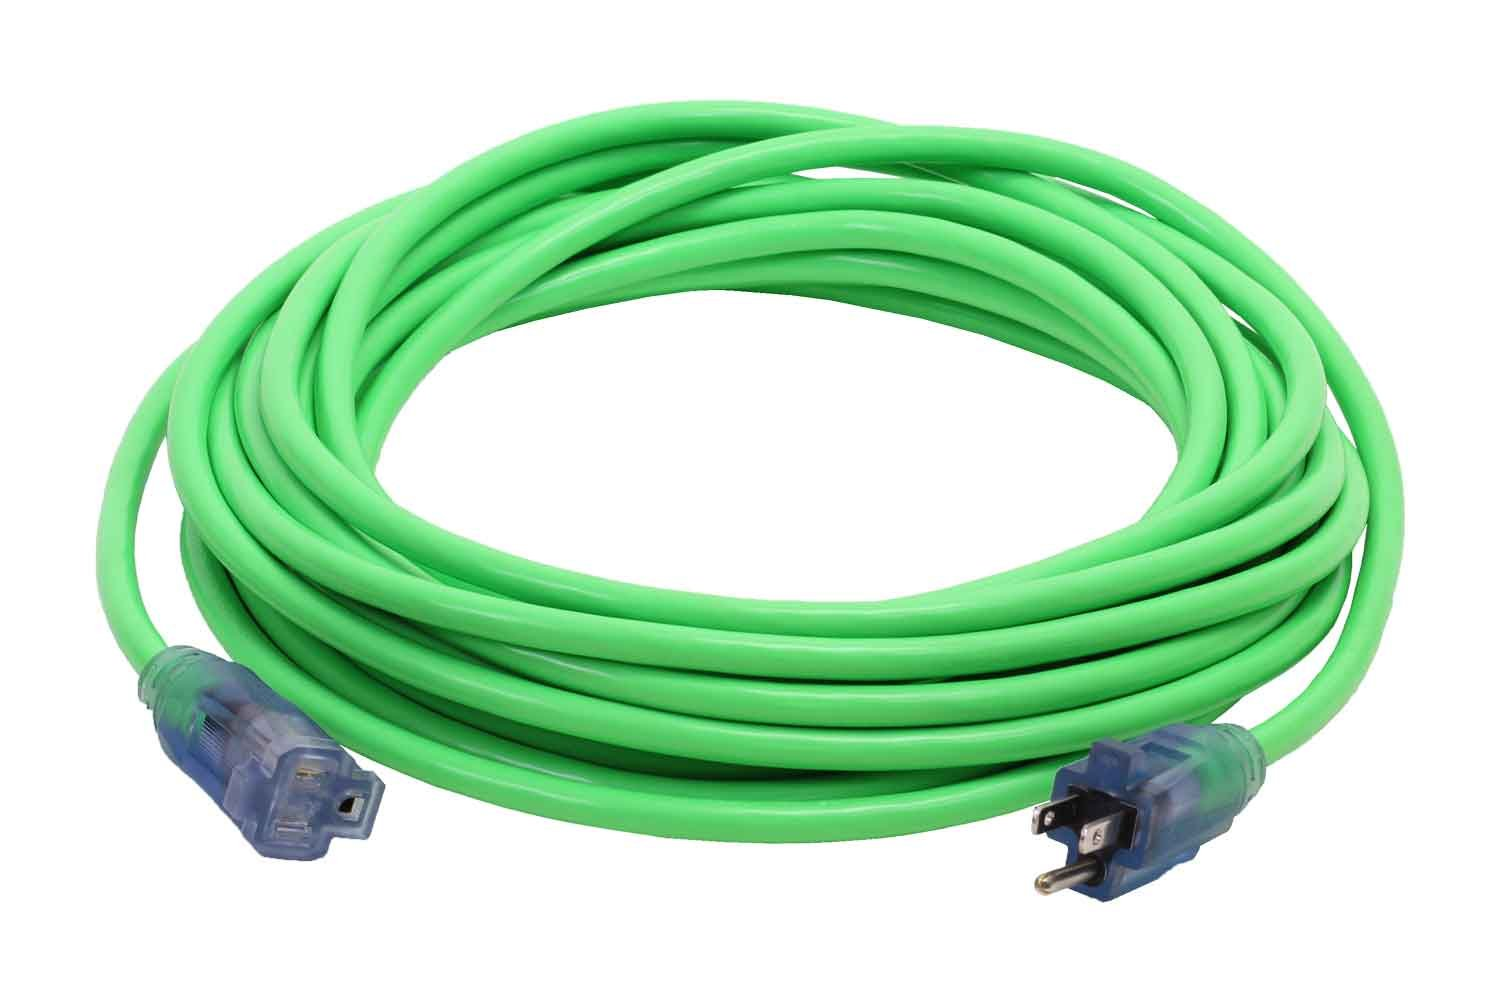 100-Foot 12/3 Green Cold Weather Extension Cord with Power & Ground Check Lights - Your Name on Cord